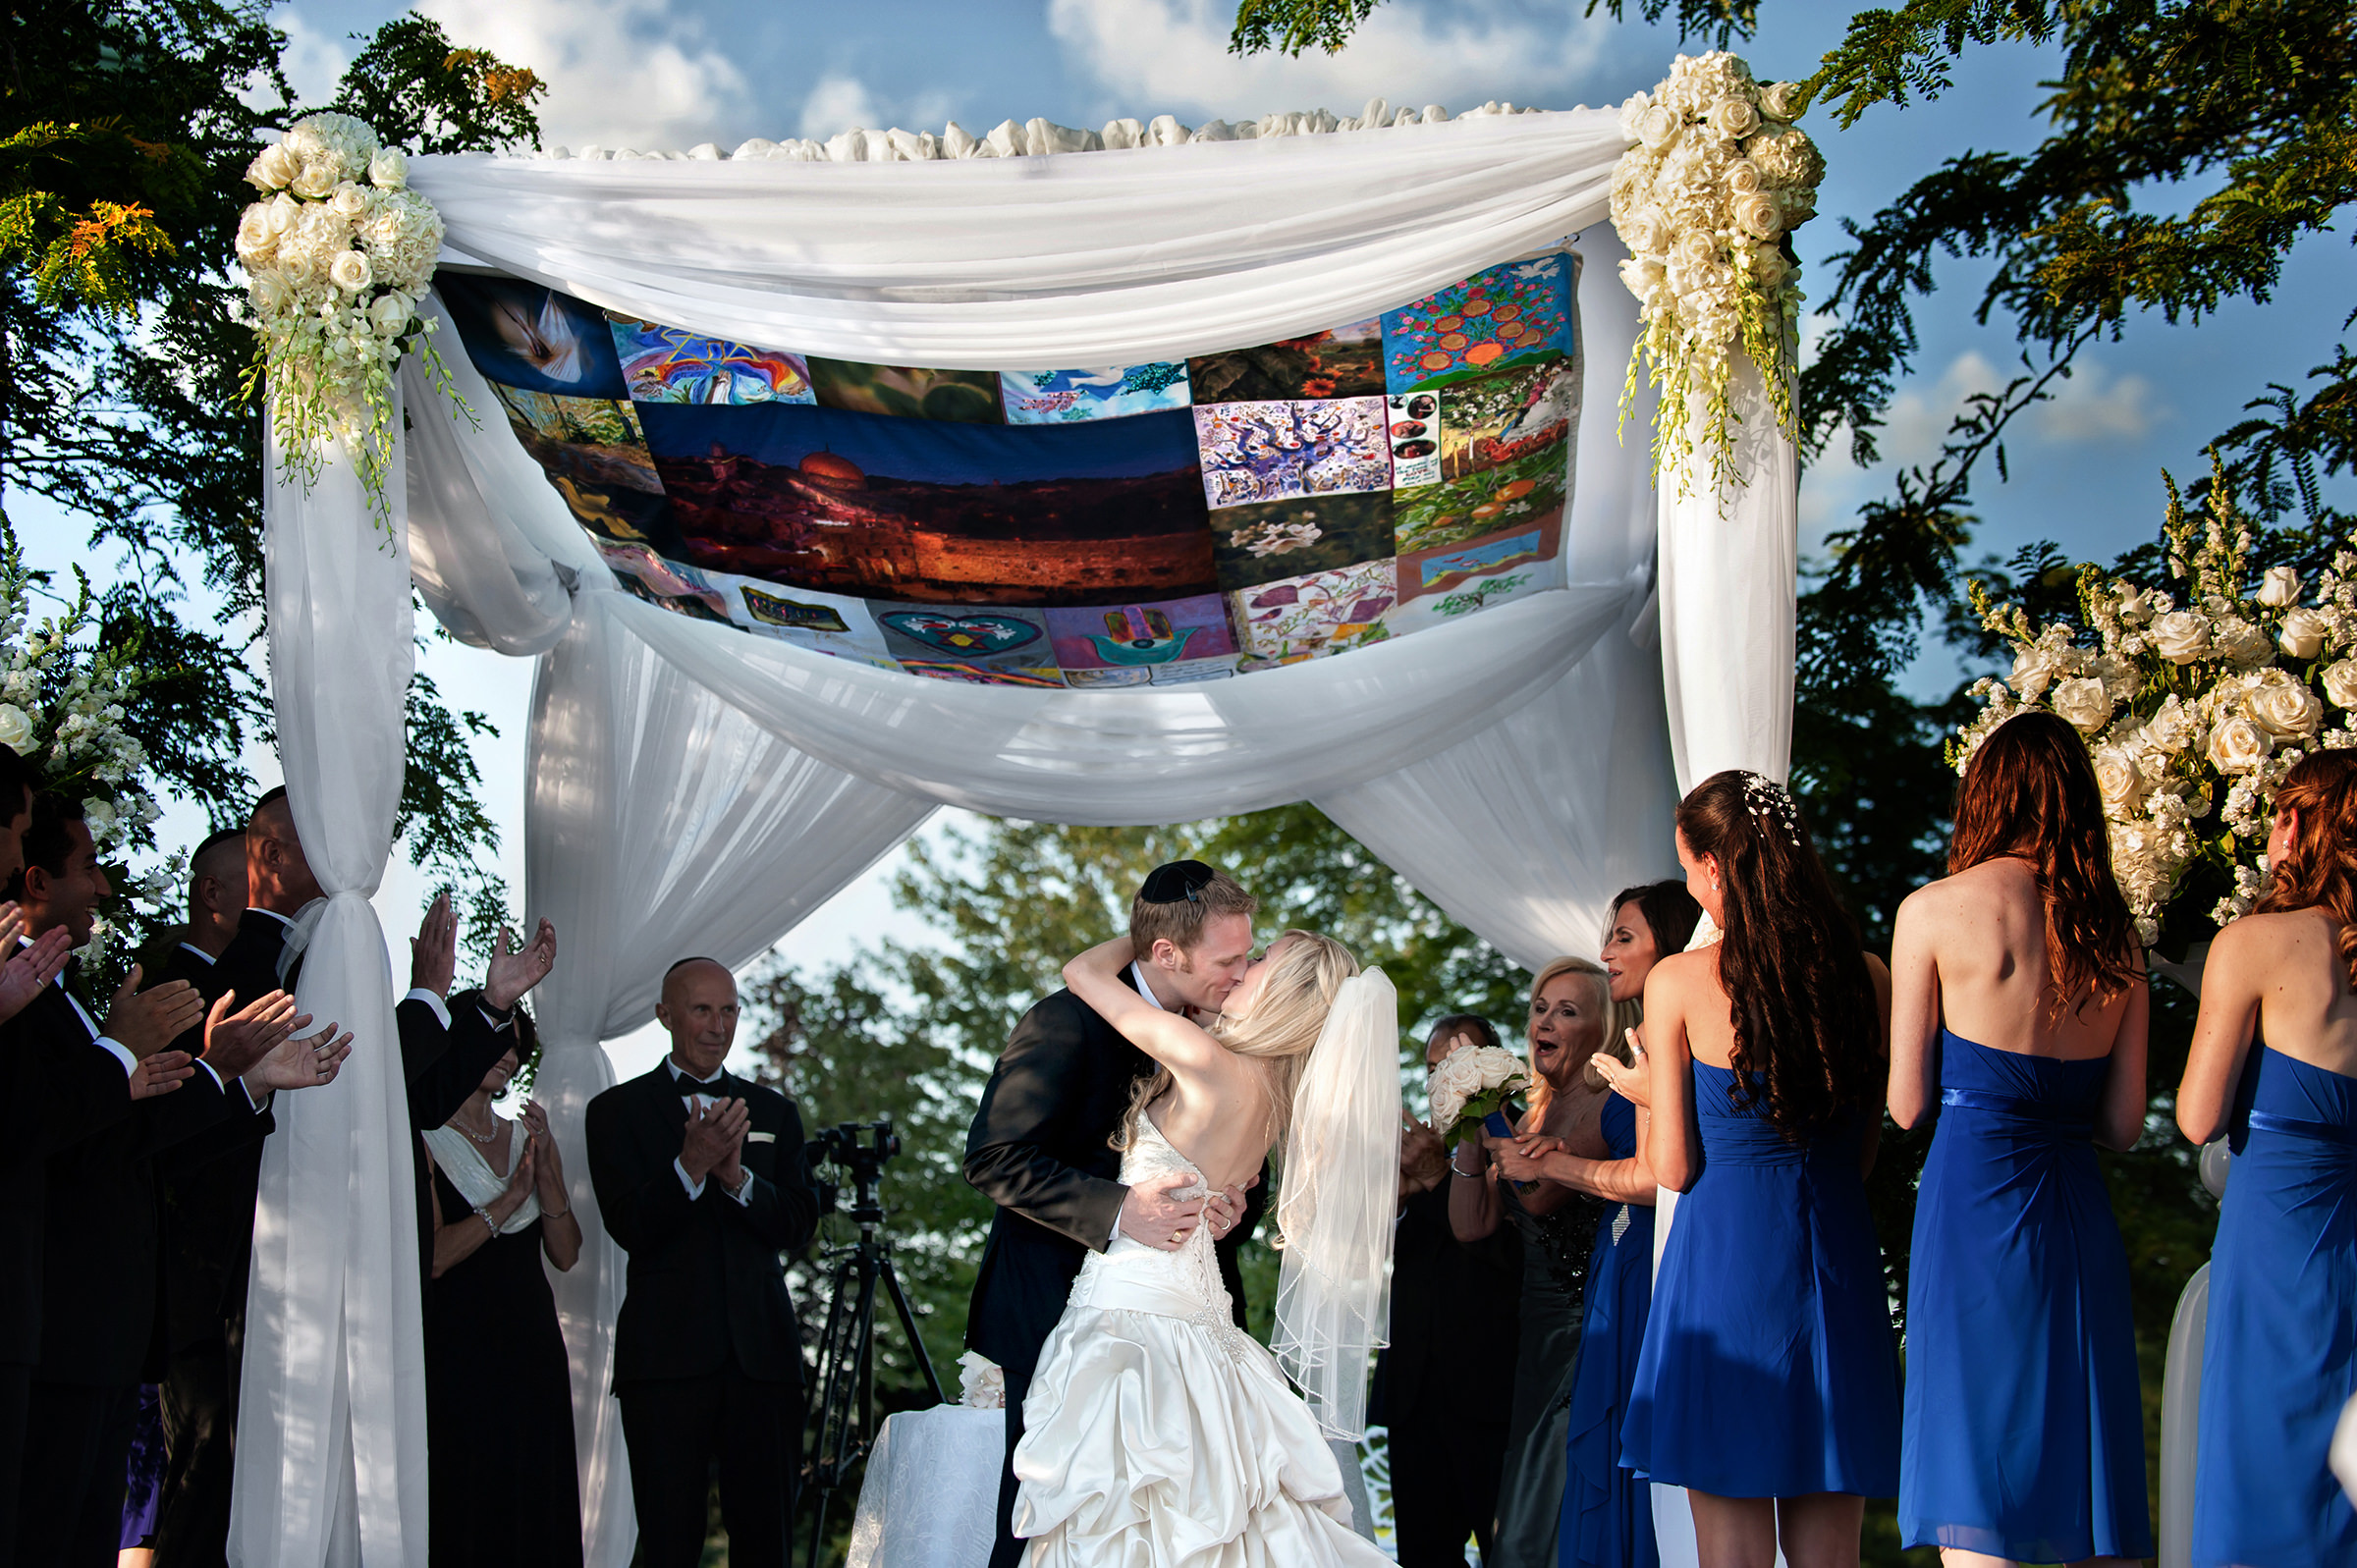 Kissing the bride under chuppah - photo by David & Sherry Photography